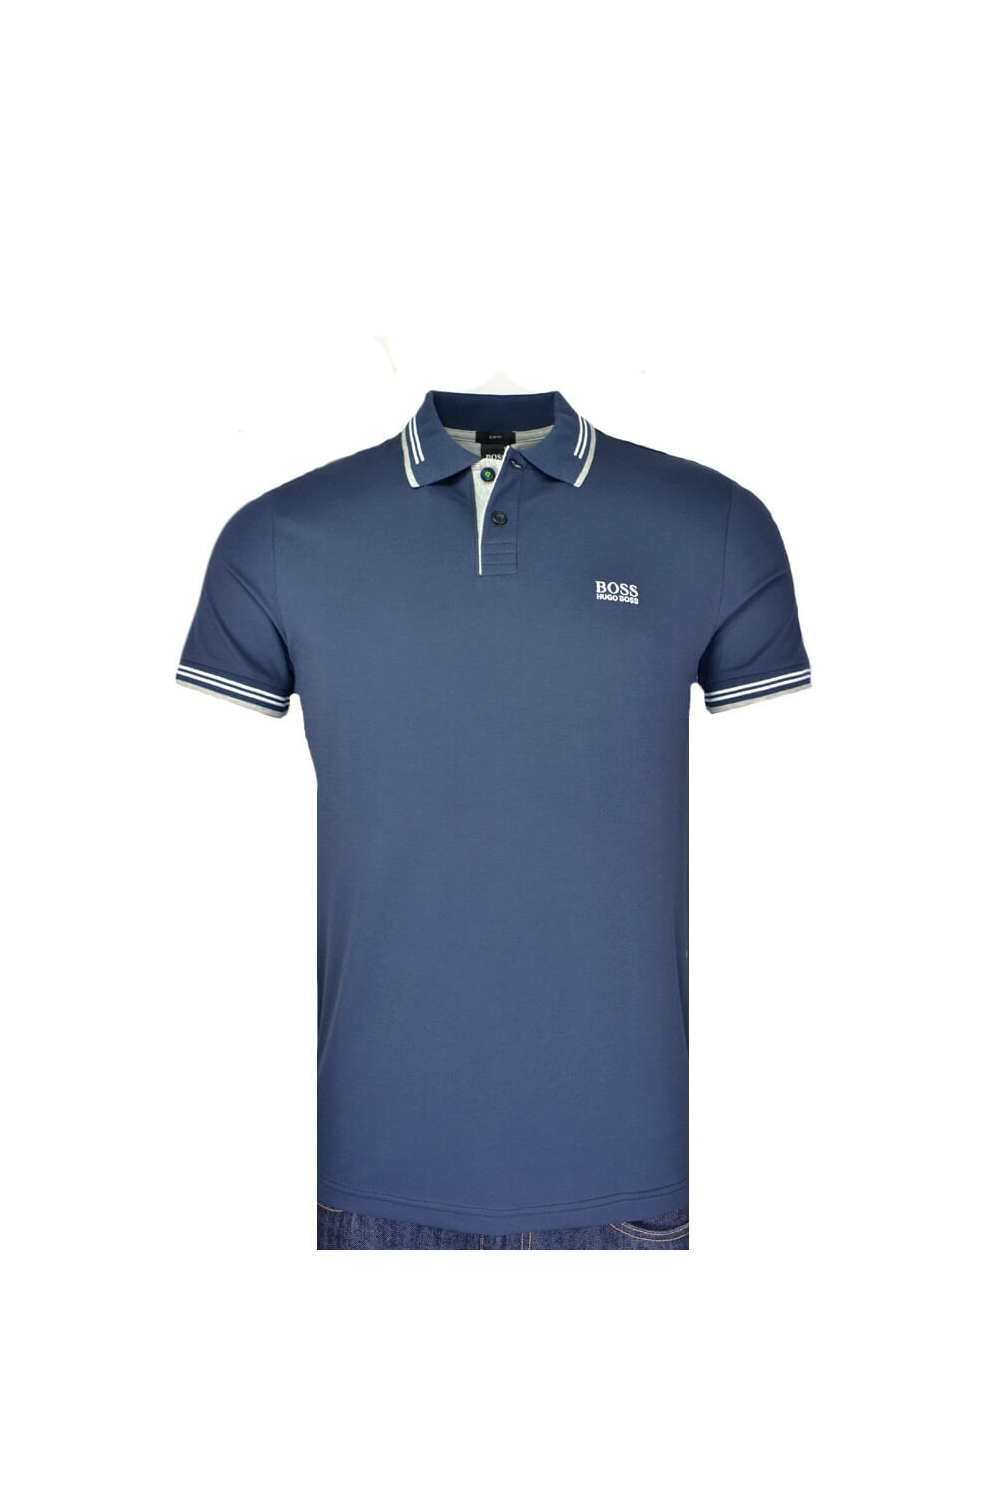 7bdf671fcbe5 BOSS Athleisure BOSS Paul Slim Fit Polo Shirt Navy - Clothing from ...